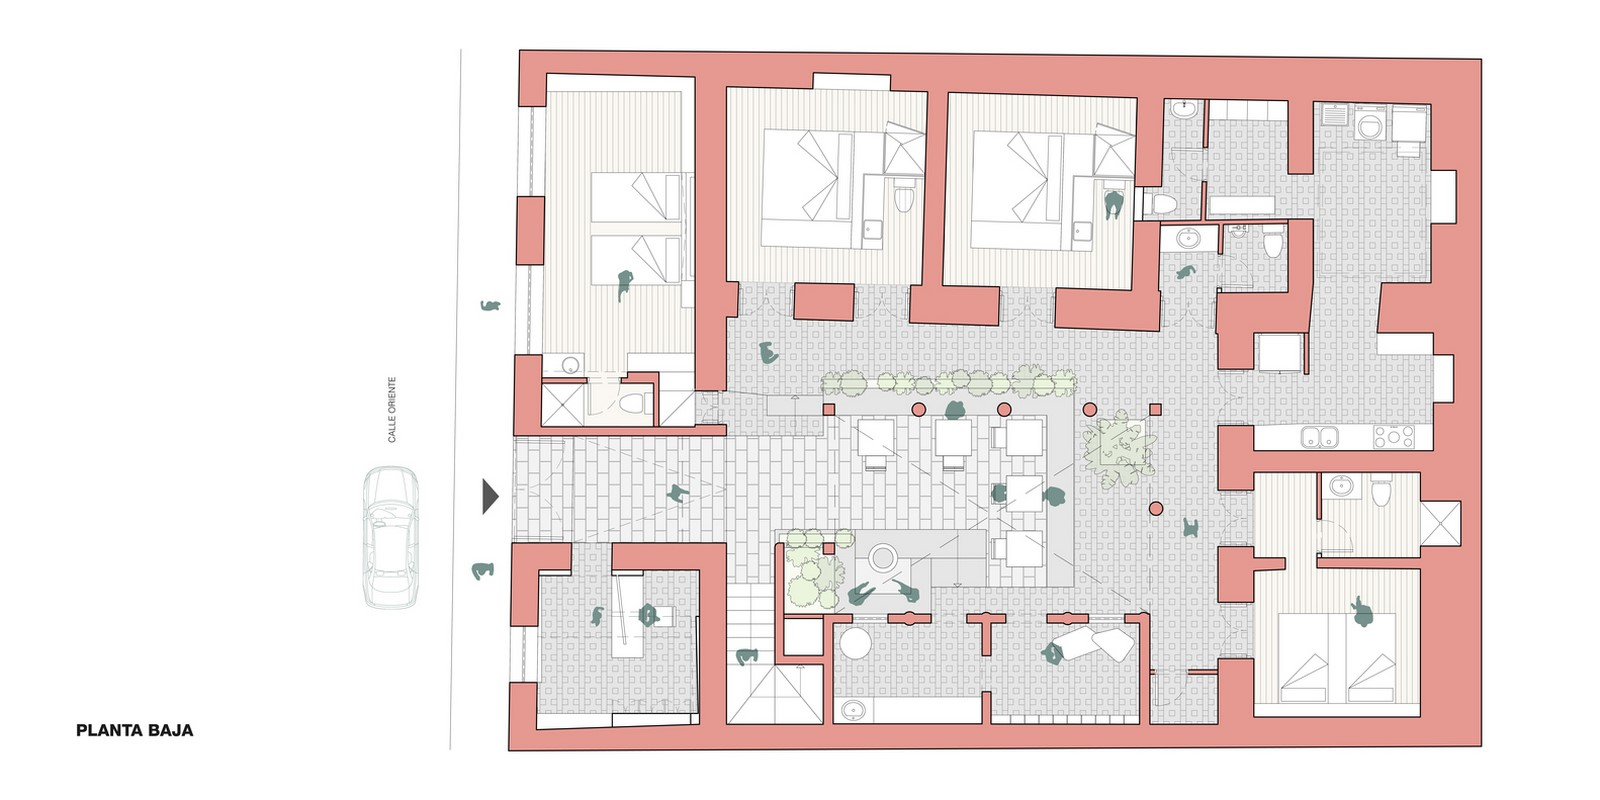 Old Building converted into a Hotel With Pinkish Walls And Central Courtyard In Quito by Nicolas & Nicolas - Sheet7